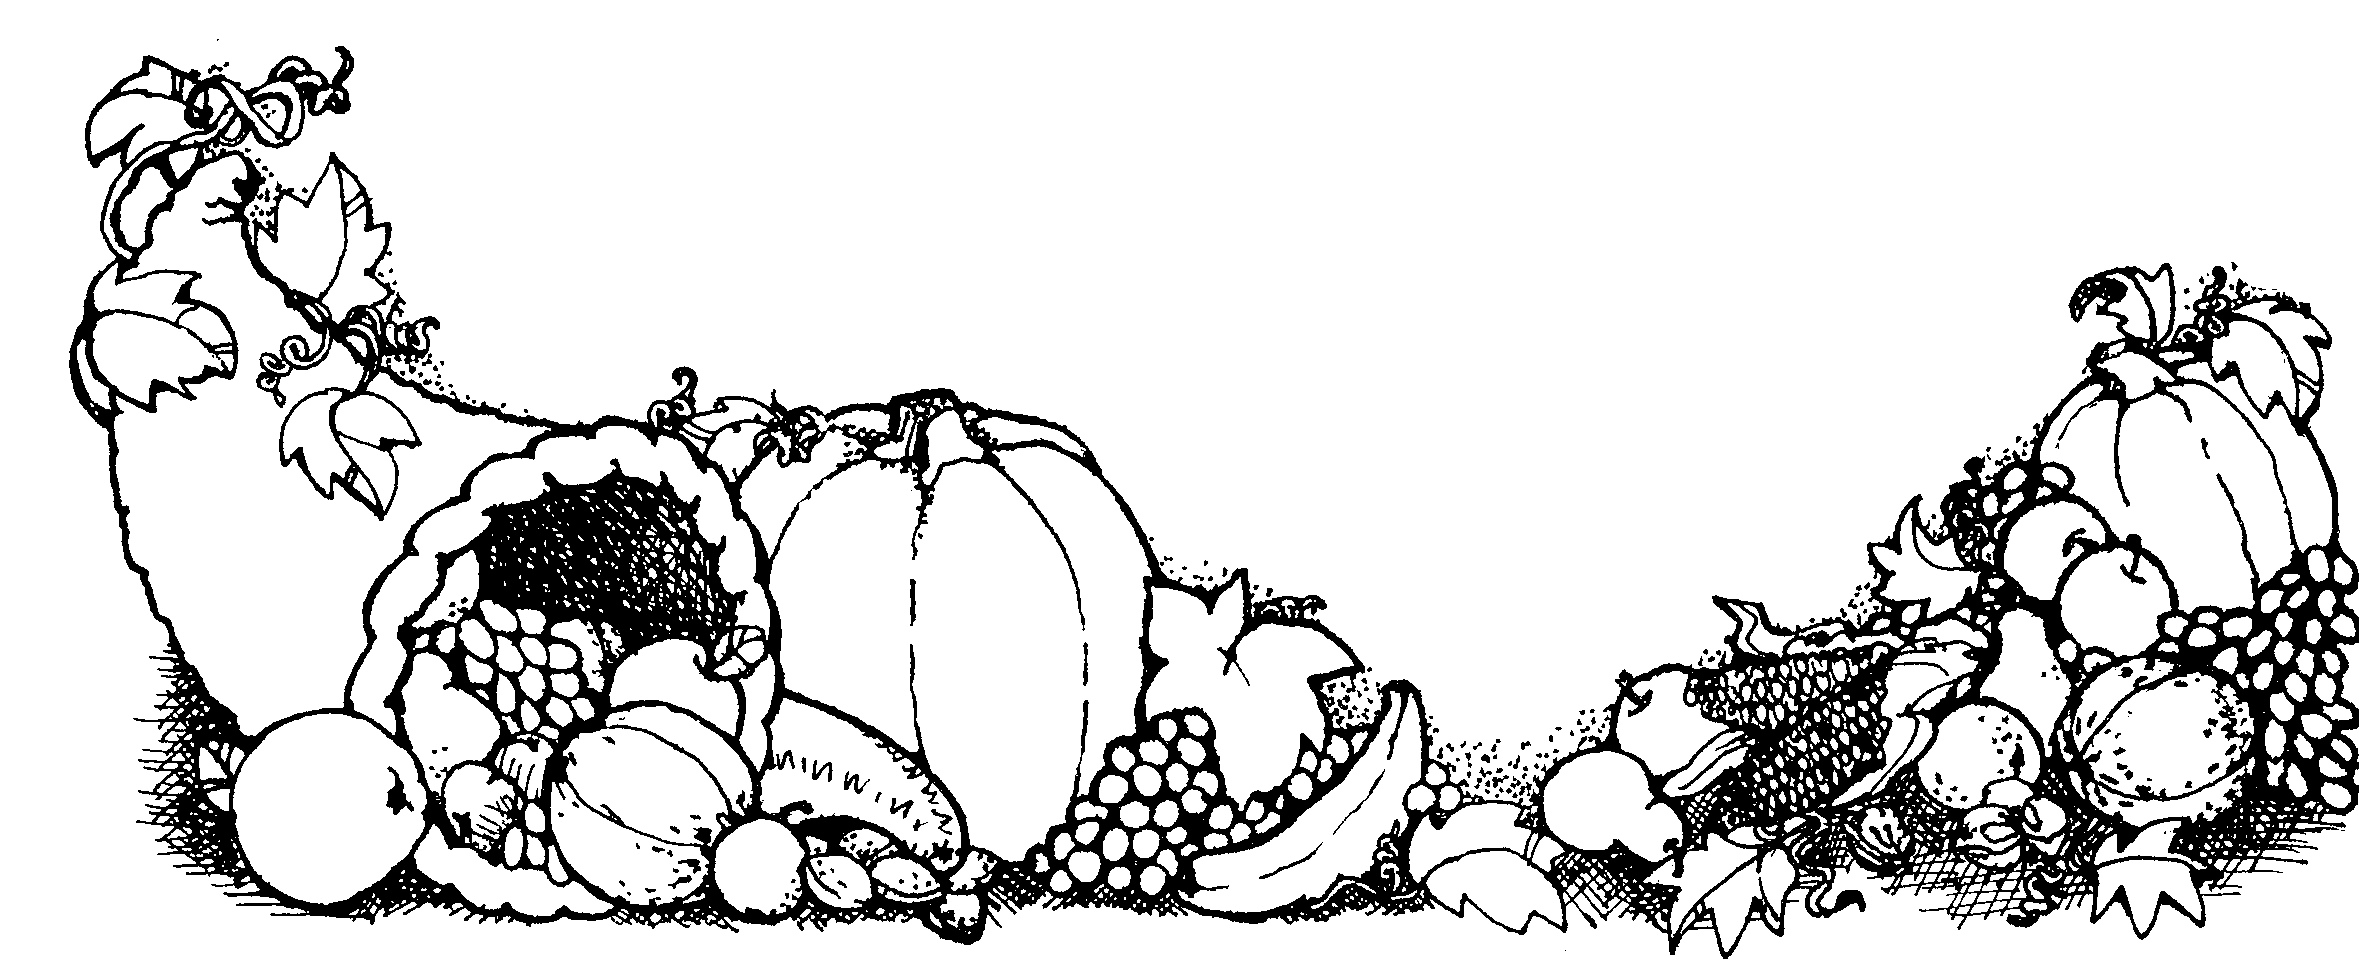 Cornucopia Clipart Black And White 20 Free Cliparts